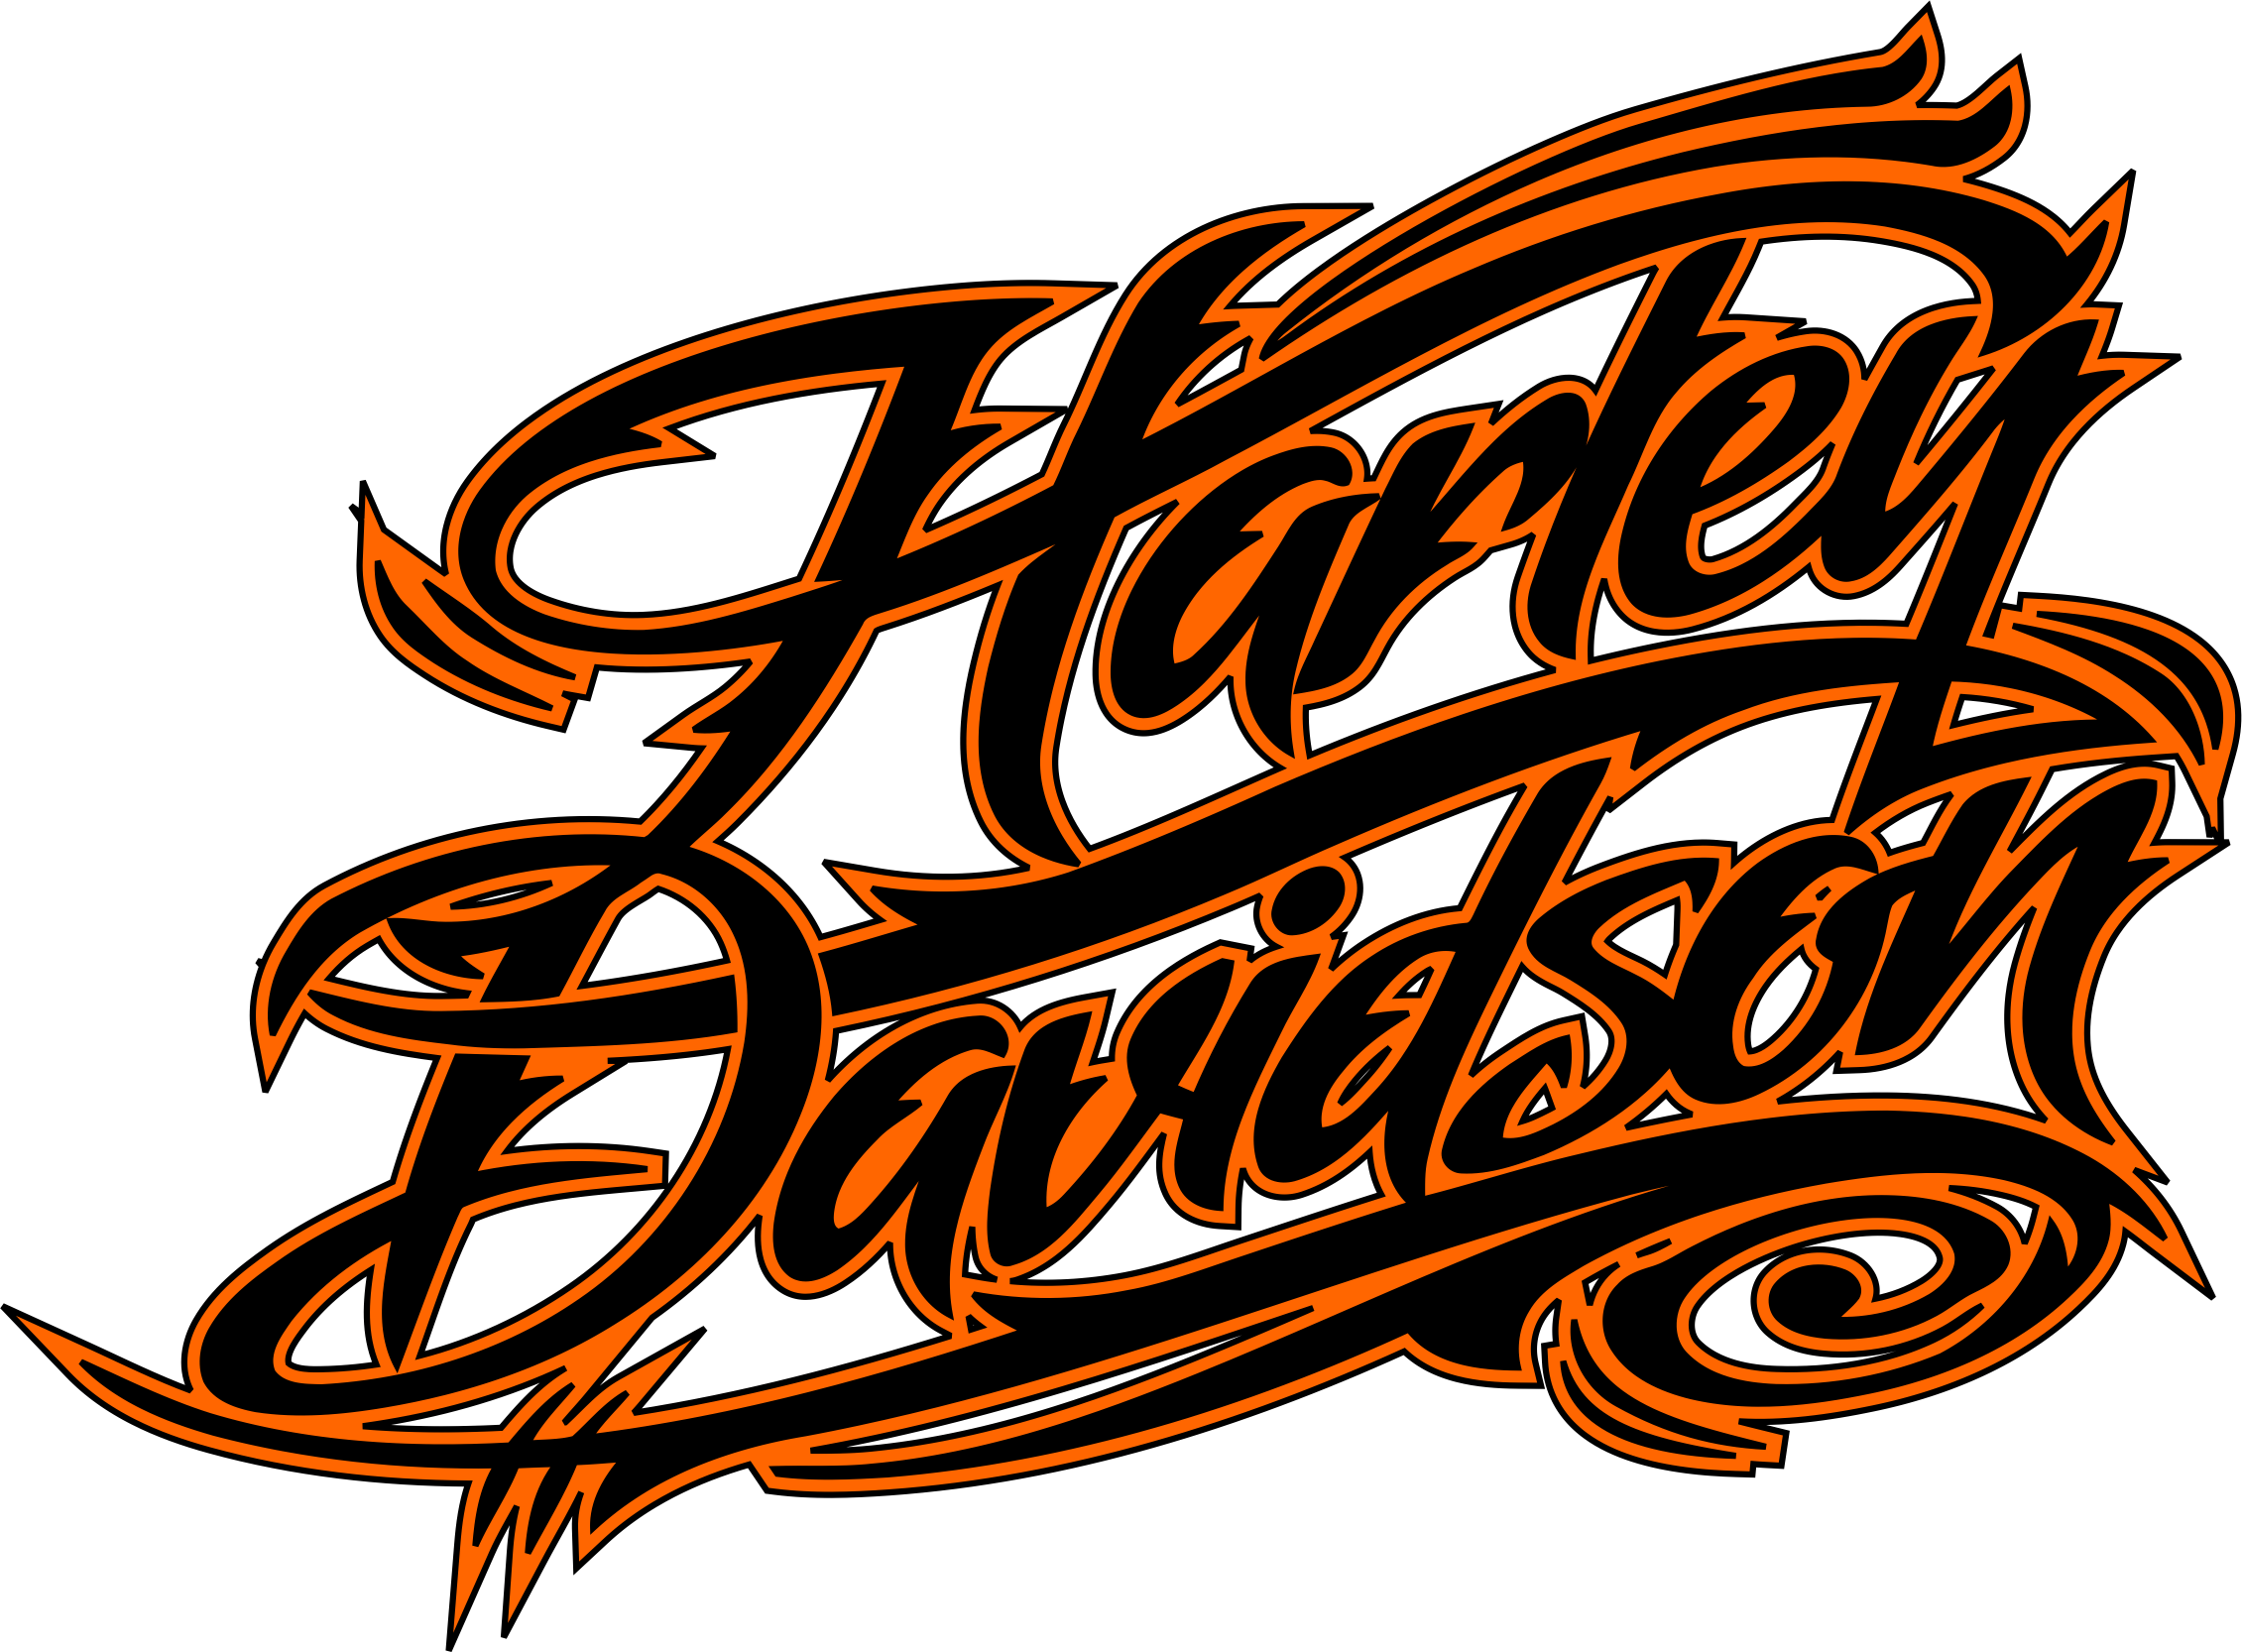 photo relating to Printable Harley Davidson Logo called Harley Davidson Symbol Drawings Totally free down load least complicated Harley